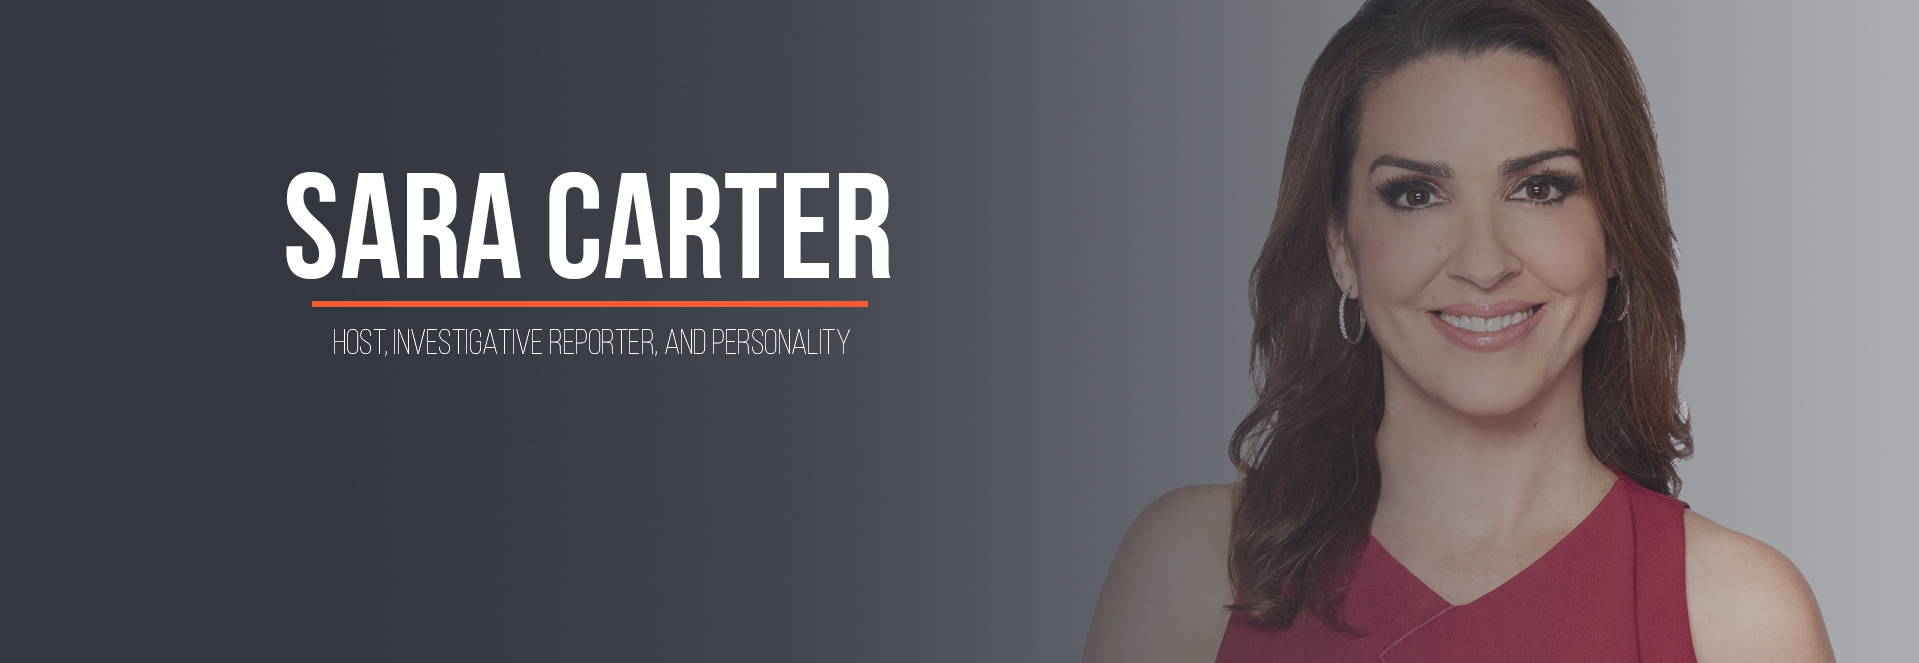 A picture of Sara Carter